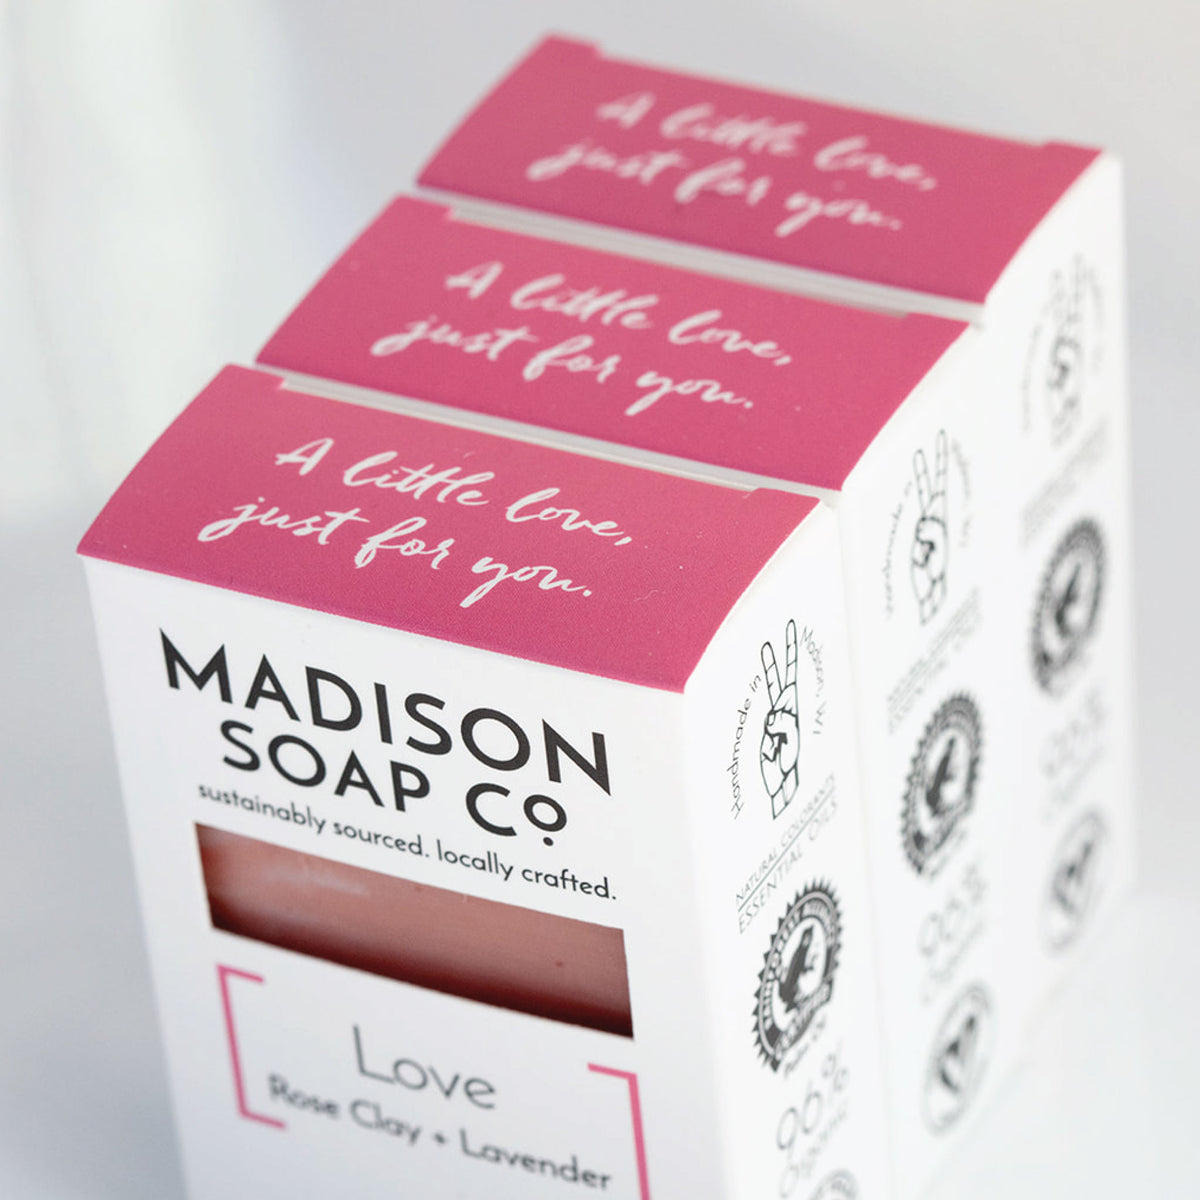 """Love"" Rose Clay + Lavender Bar Soap Soap by Madison Soap Company from Madison Soap Company"